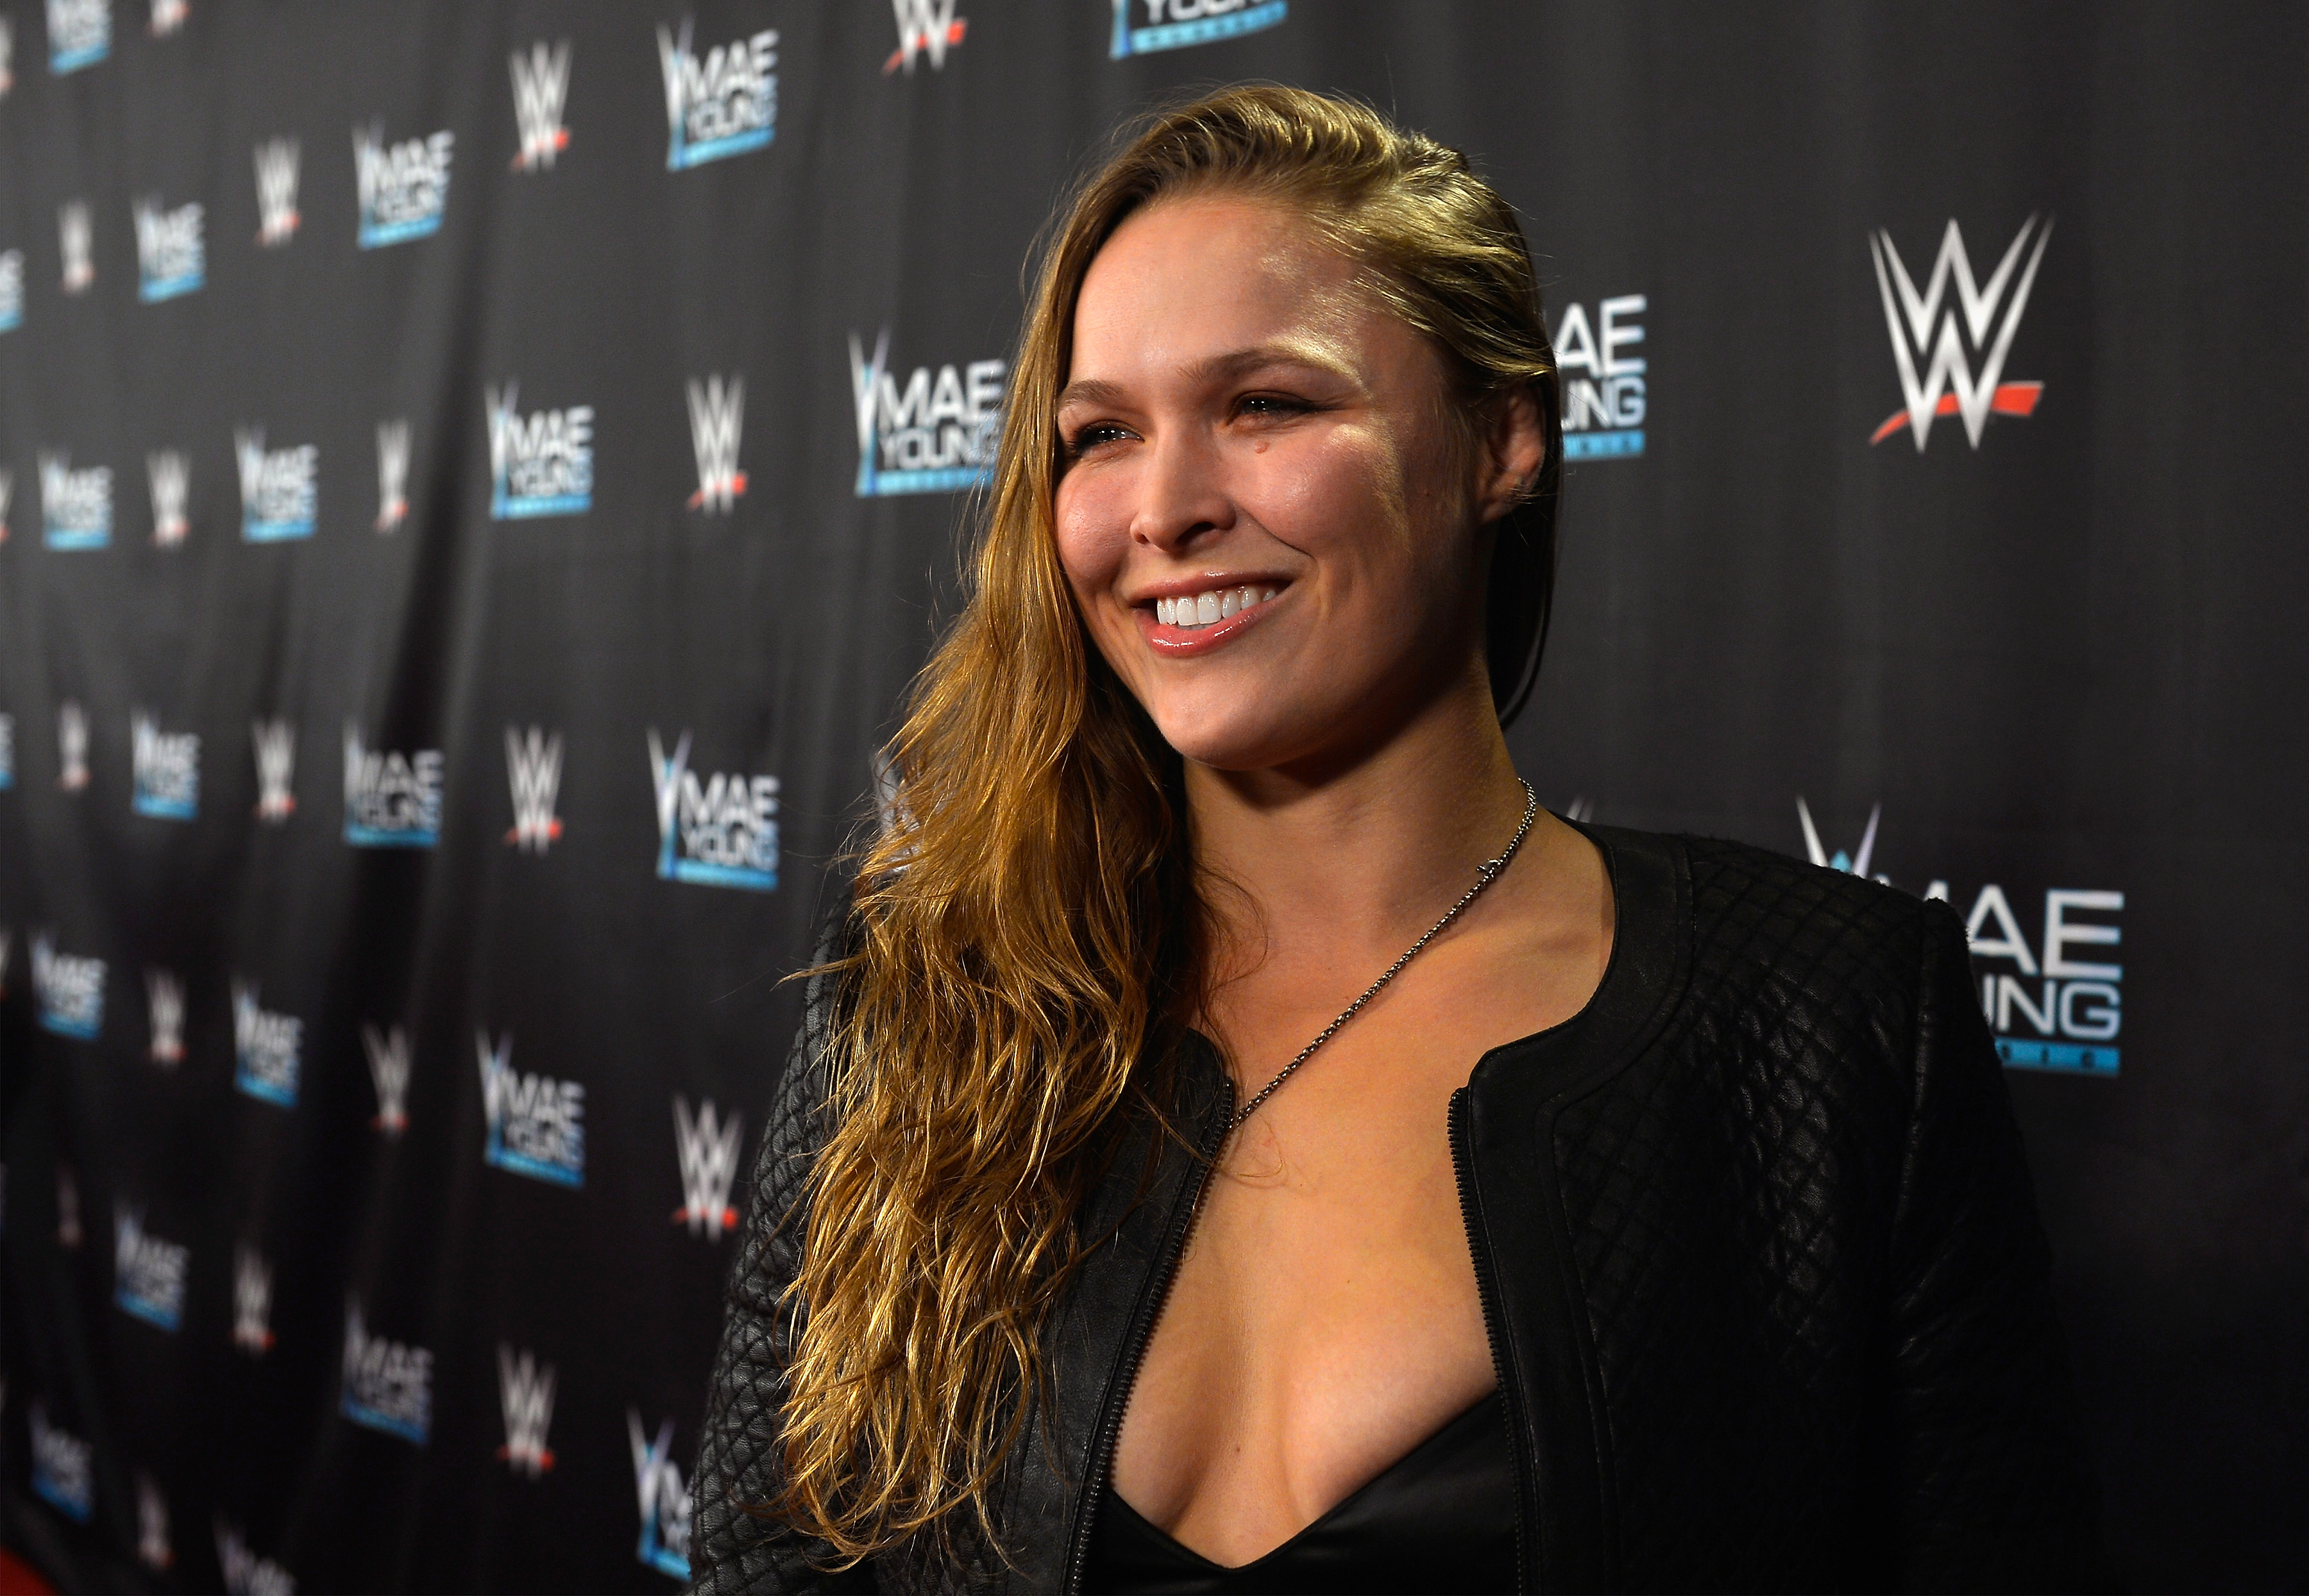 Ronda Rousey poses for a photo at a WWE event